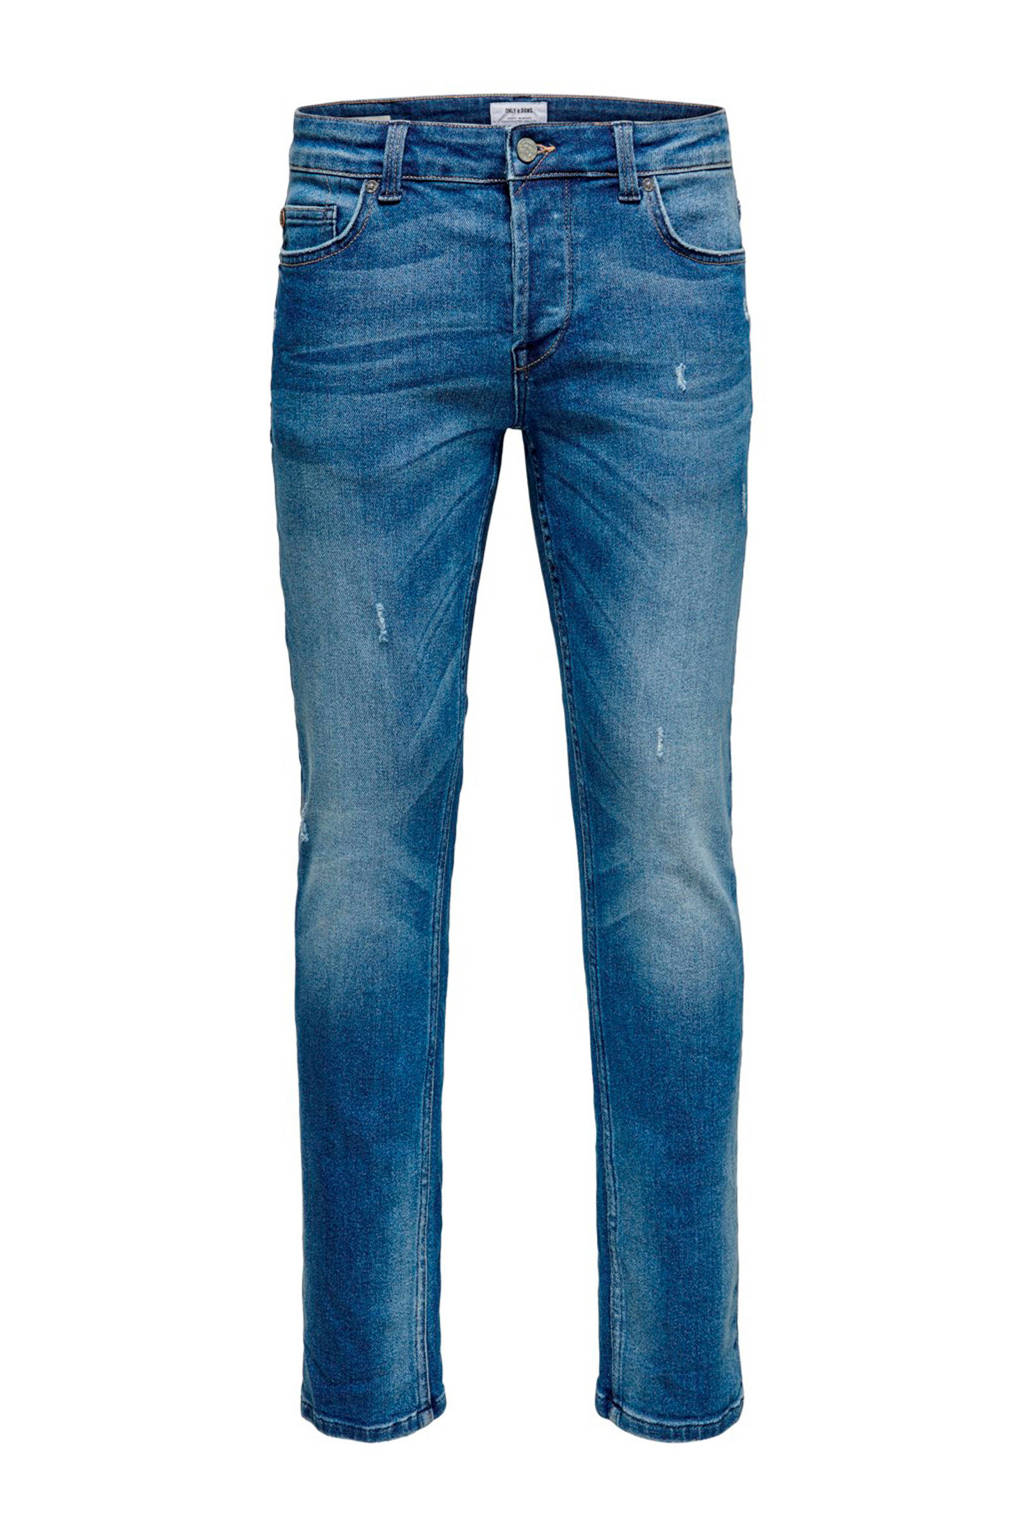 ONLY & SONS slim fit jog denim Loom blue denim 3632, Blue denim